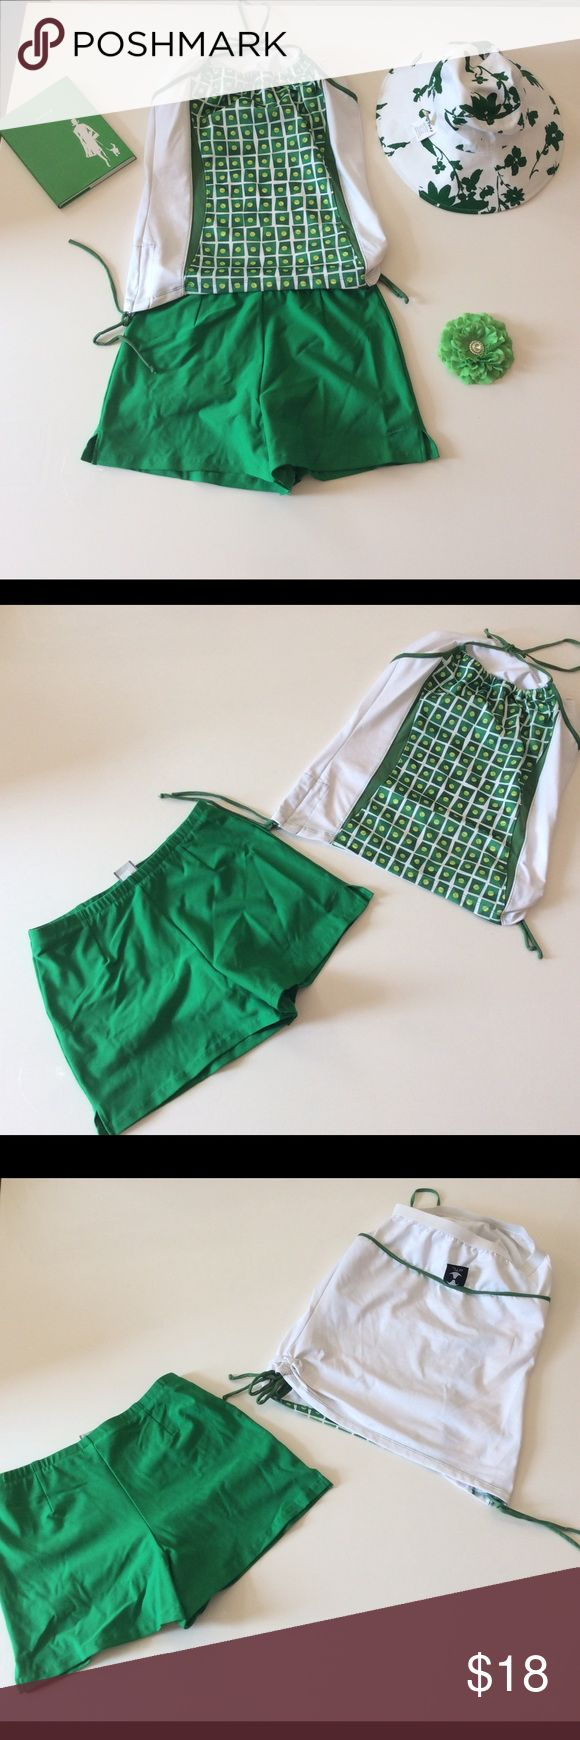 🎾🎾 Nike tennis shorts with. DTL top🎾🎾 green is the perfect court color. Nike court shorts with a halter top in the same green size small / medium Nike Shorts